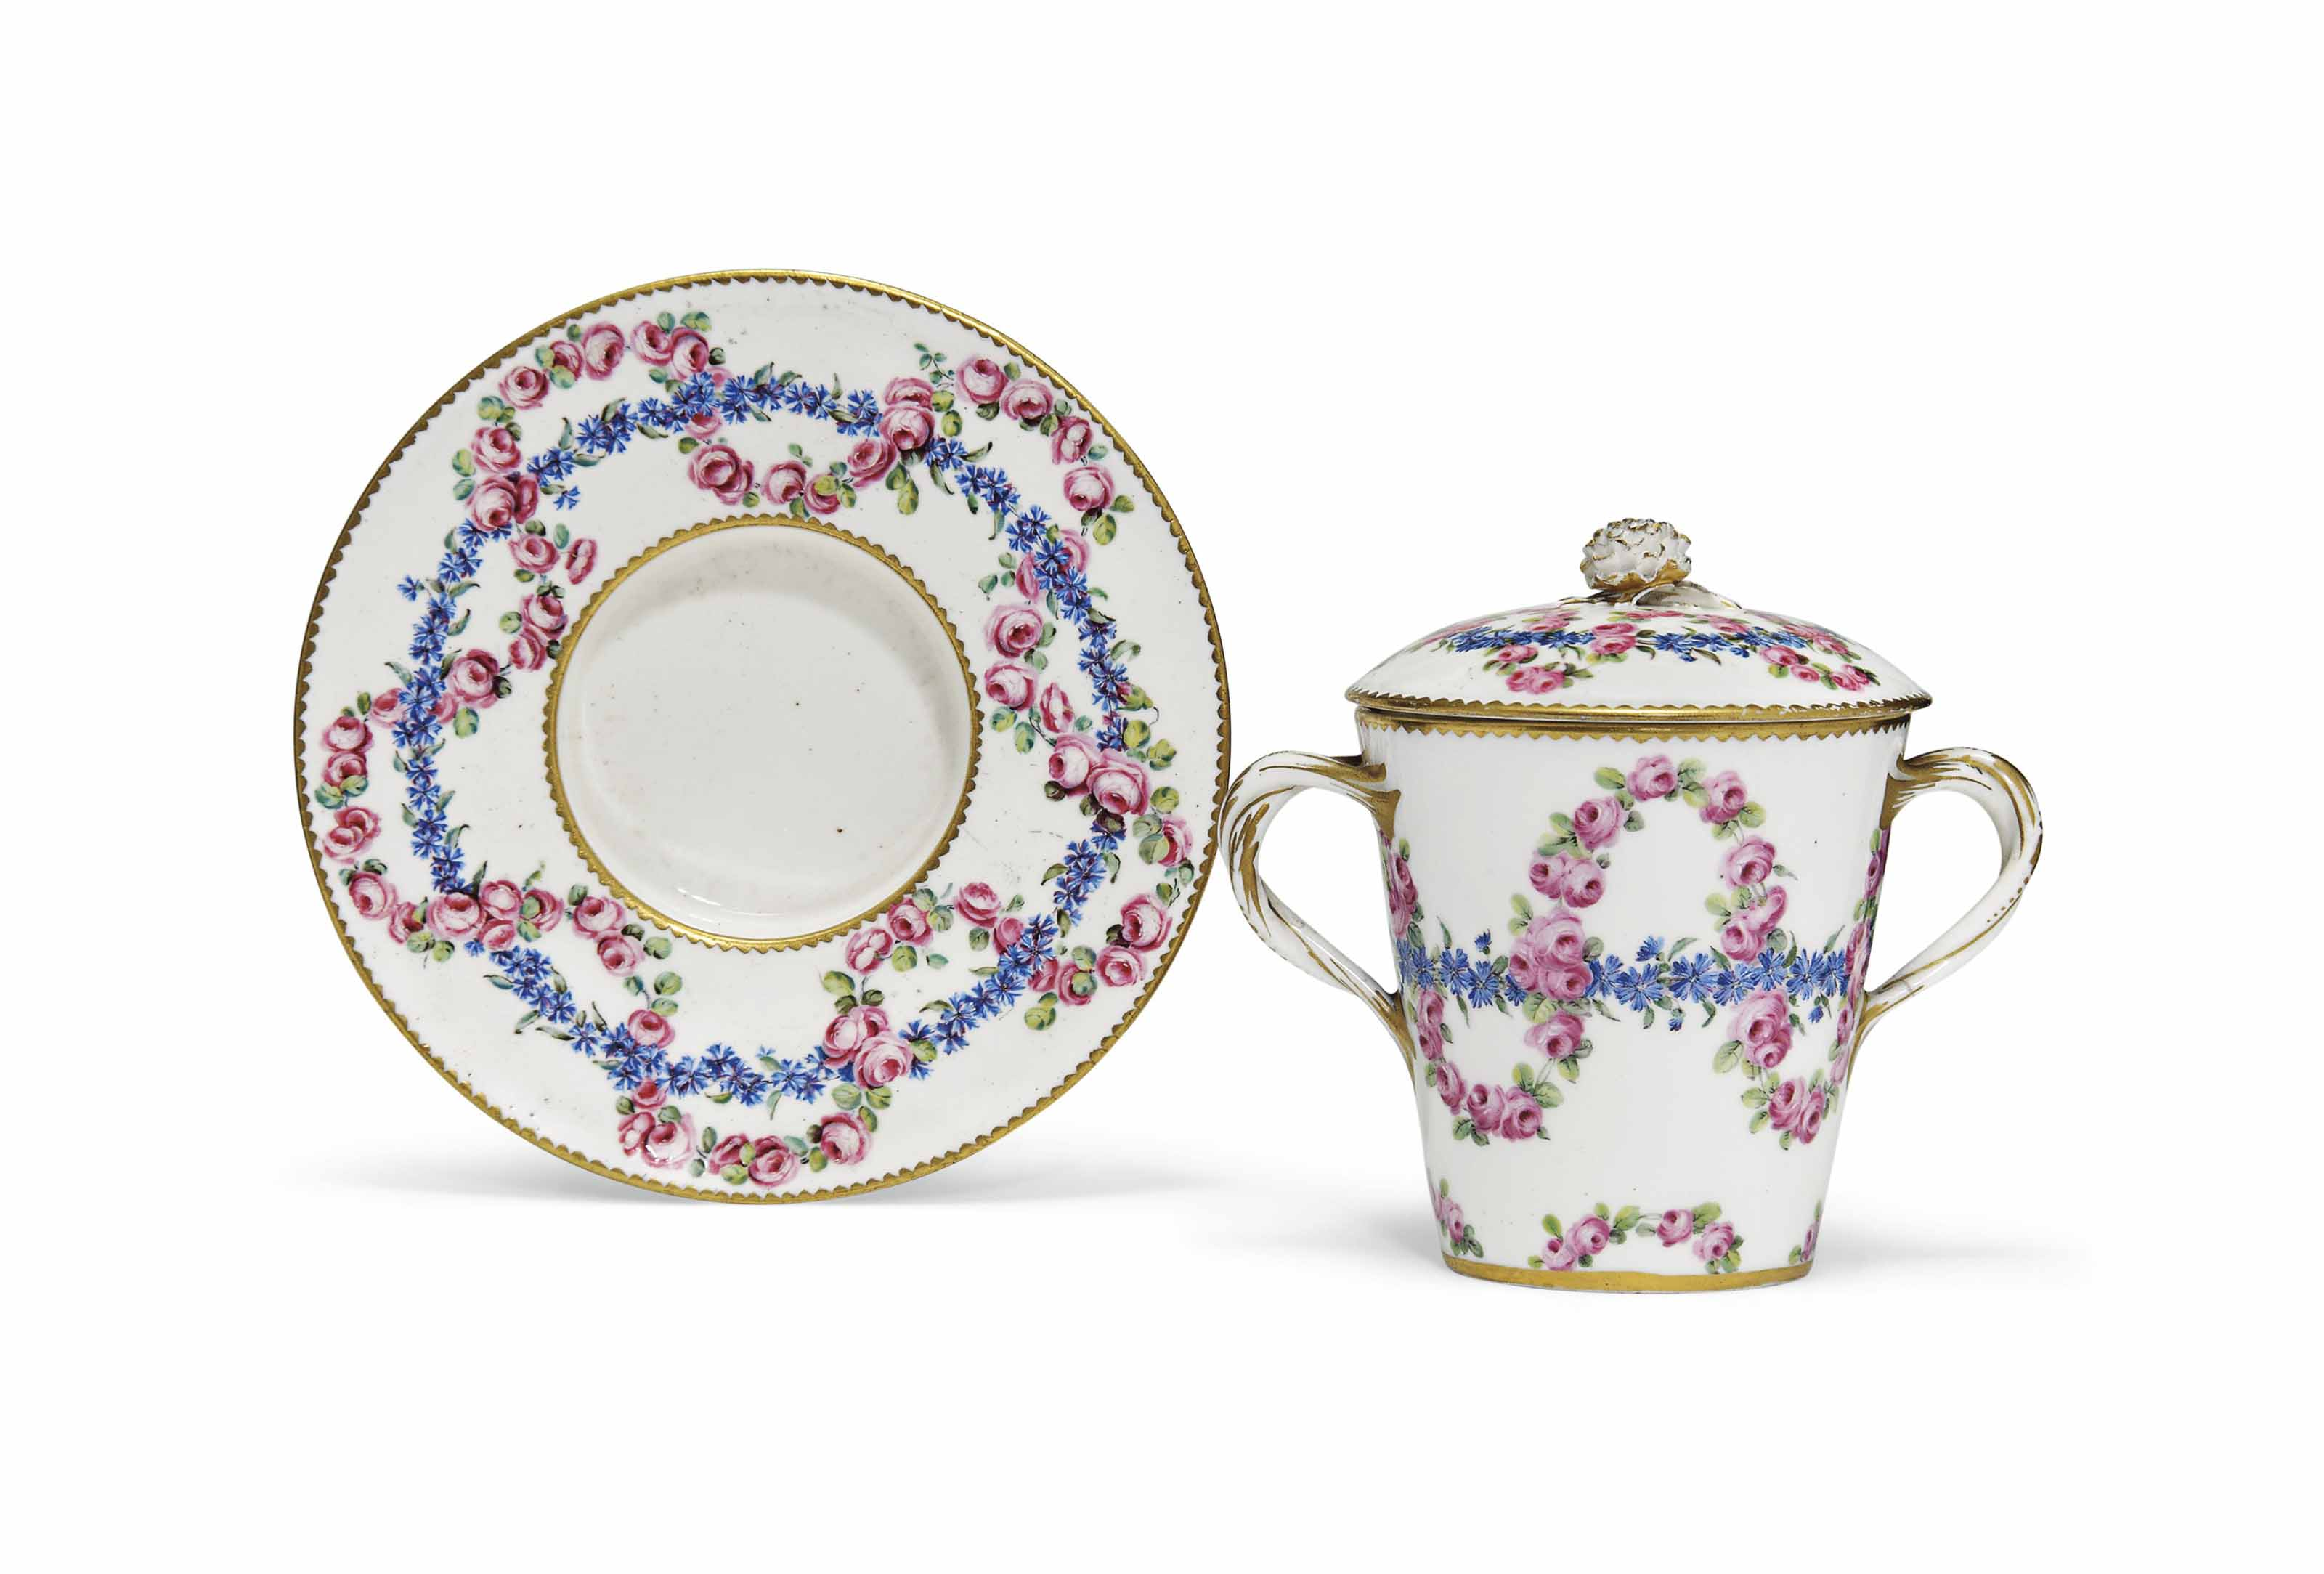 A SEVRES TWO-HANDLED CUP, COVE